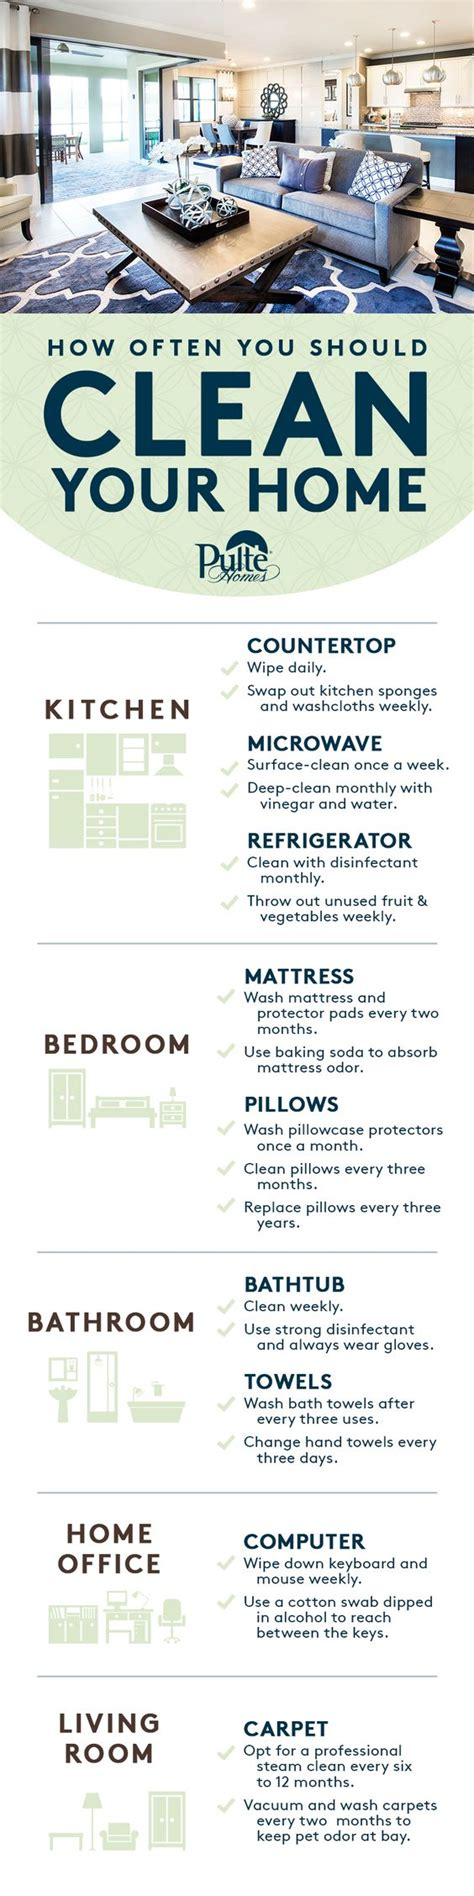 How Do You Clean Your Bedroom by Home Bathroom And Bedrooms On